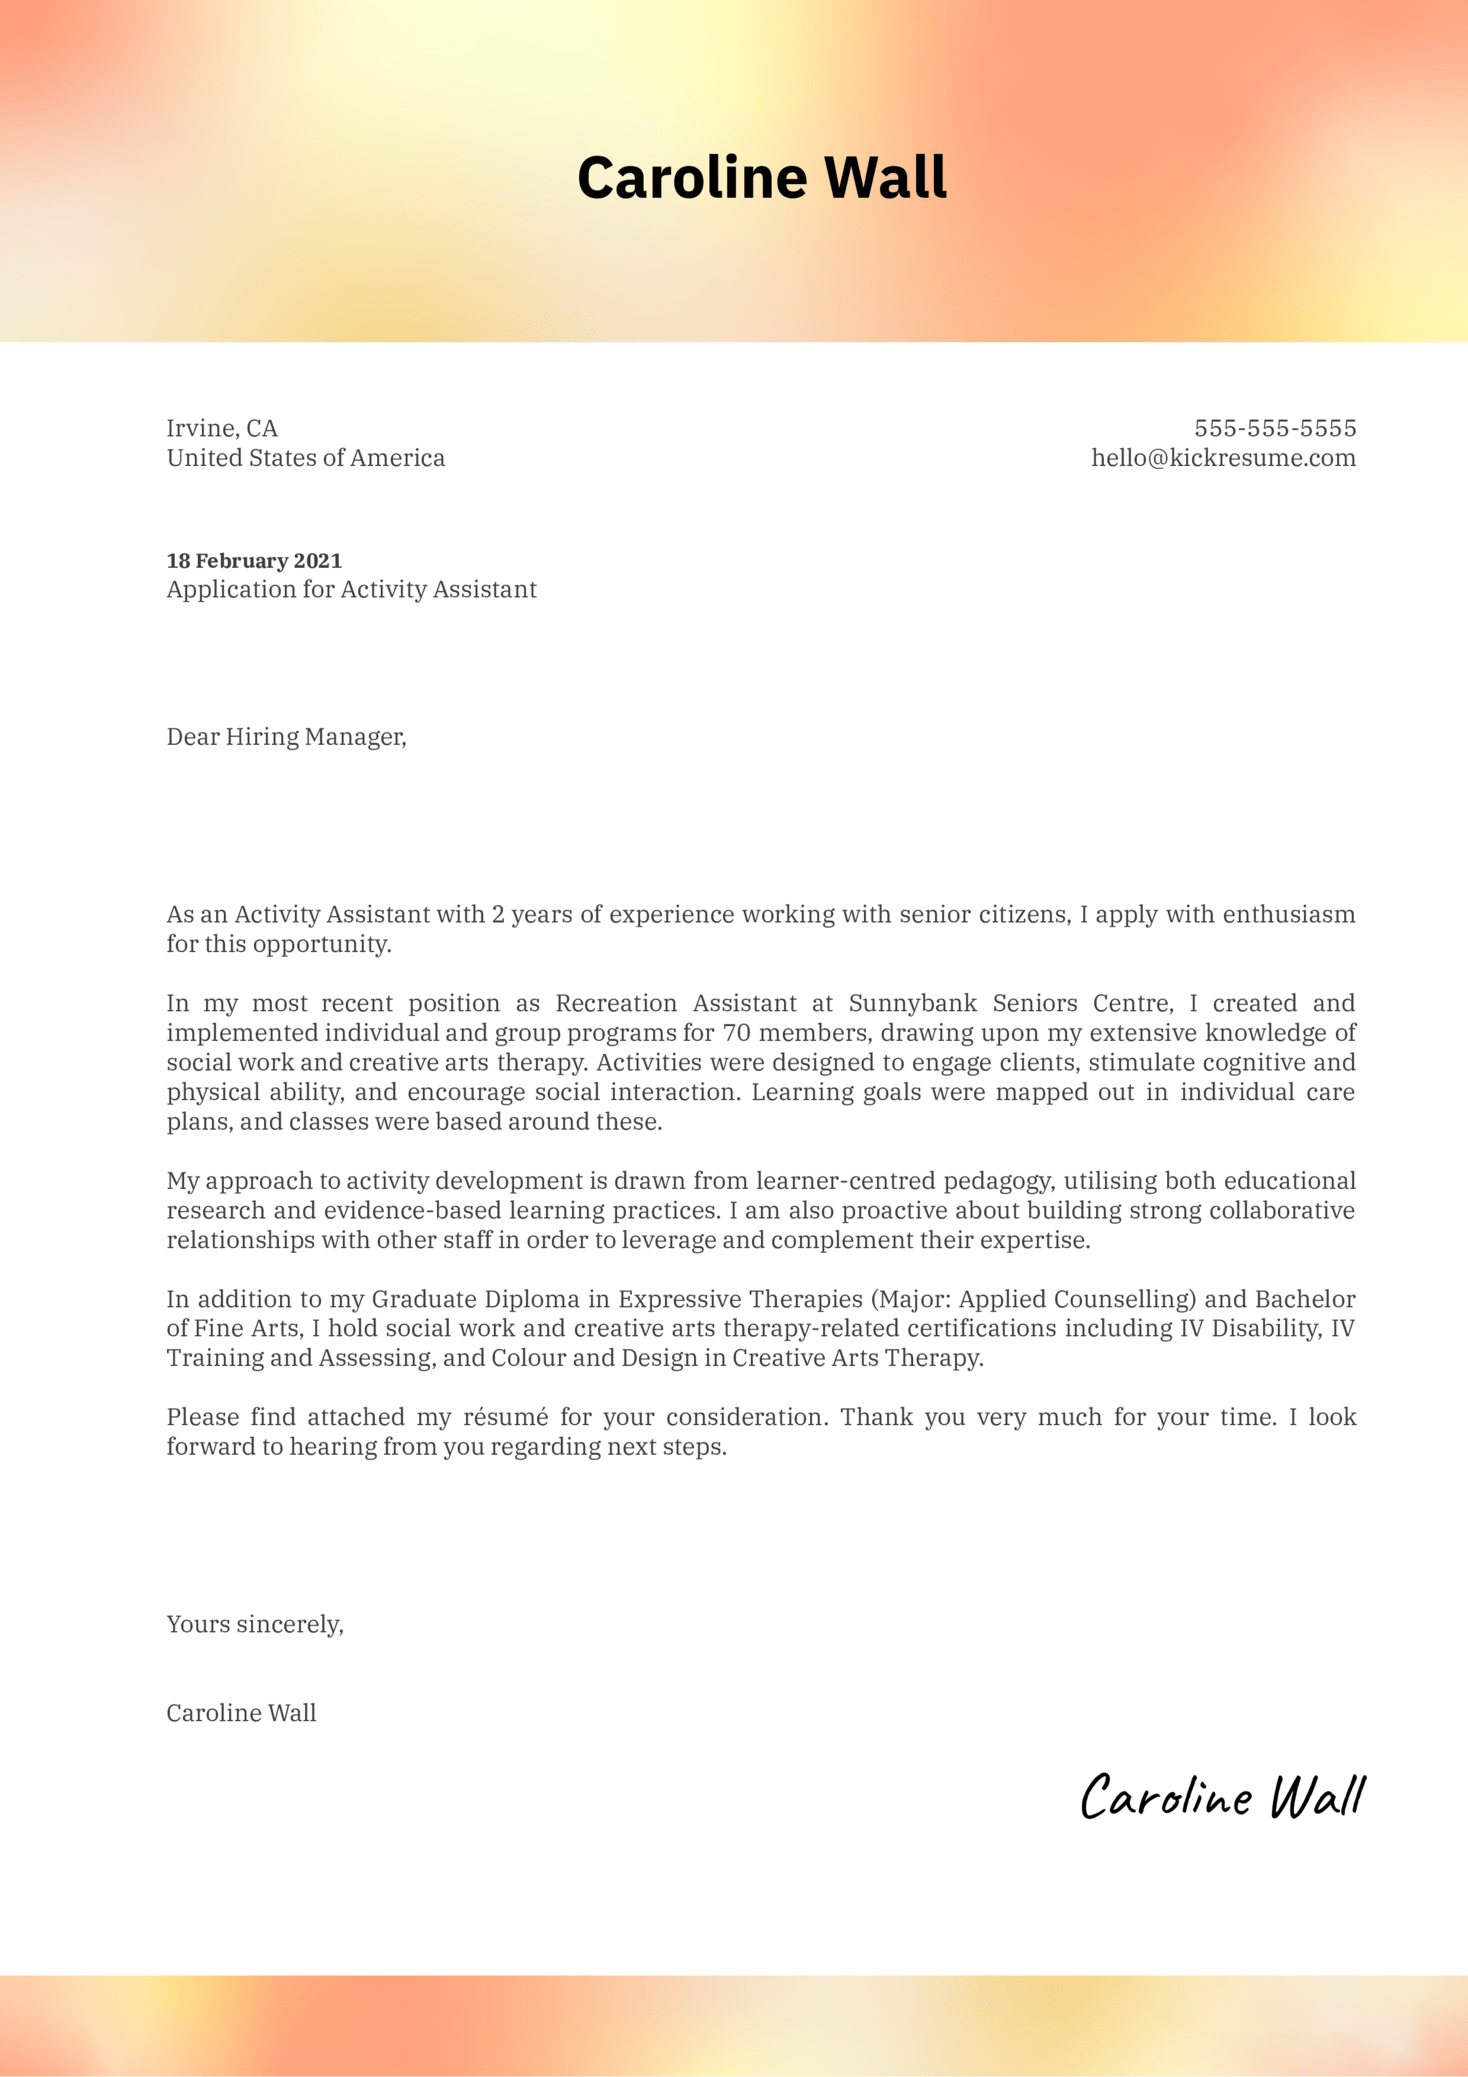 Activity Assistant Cover Letter Sample